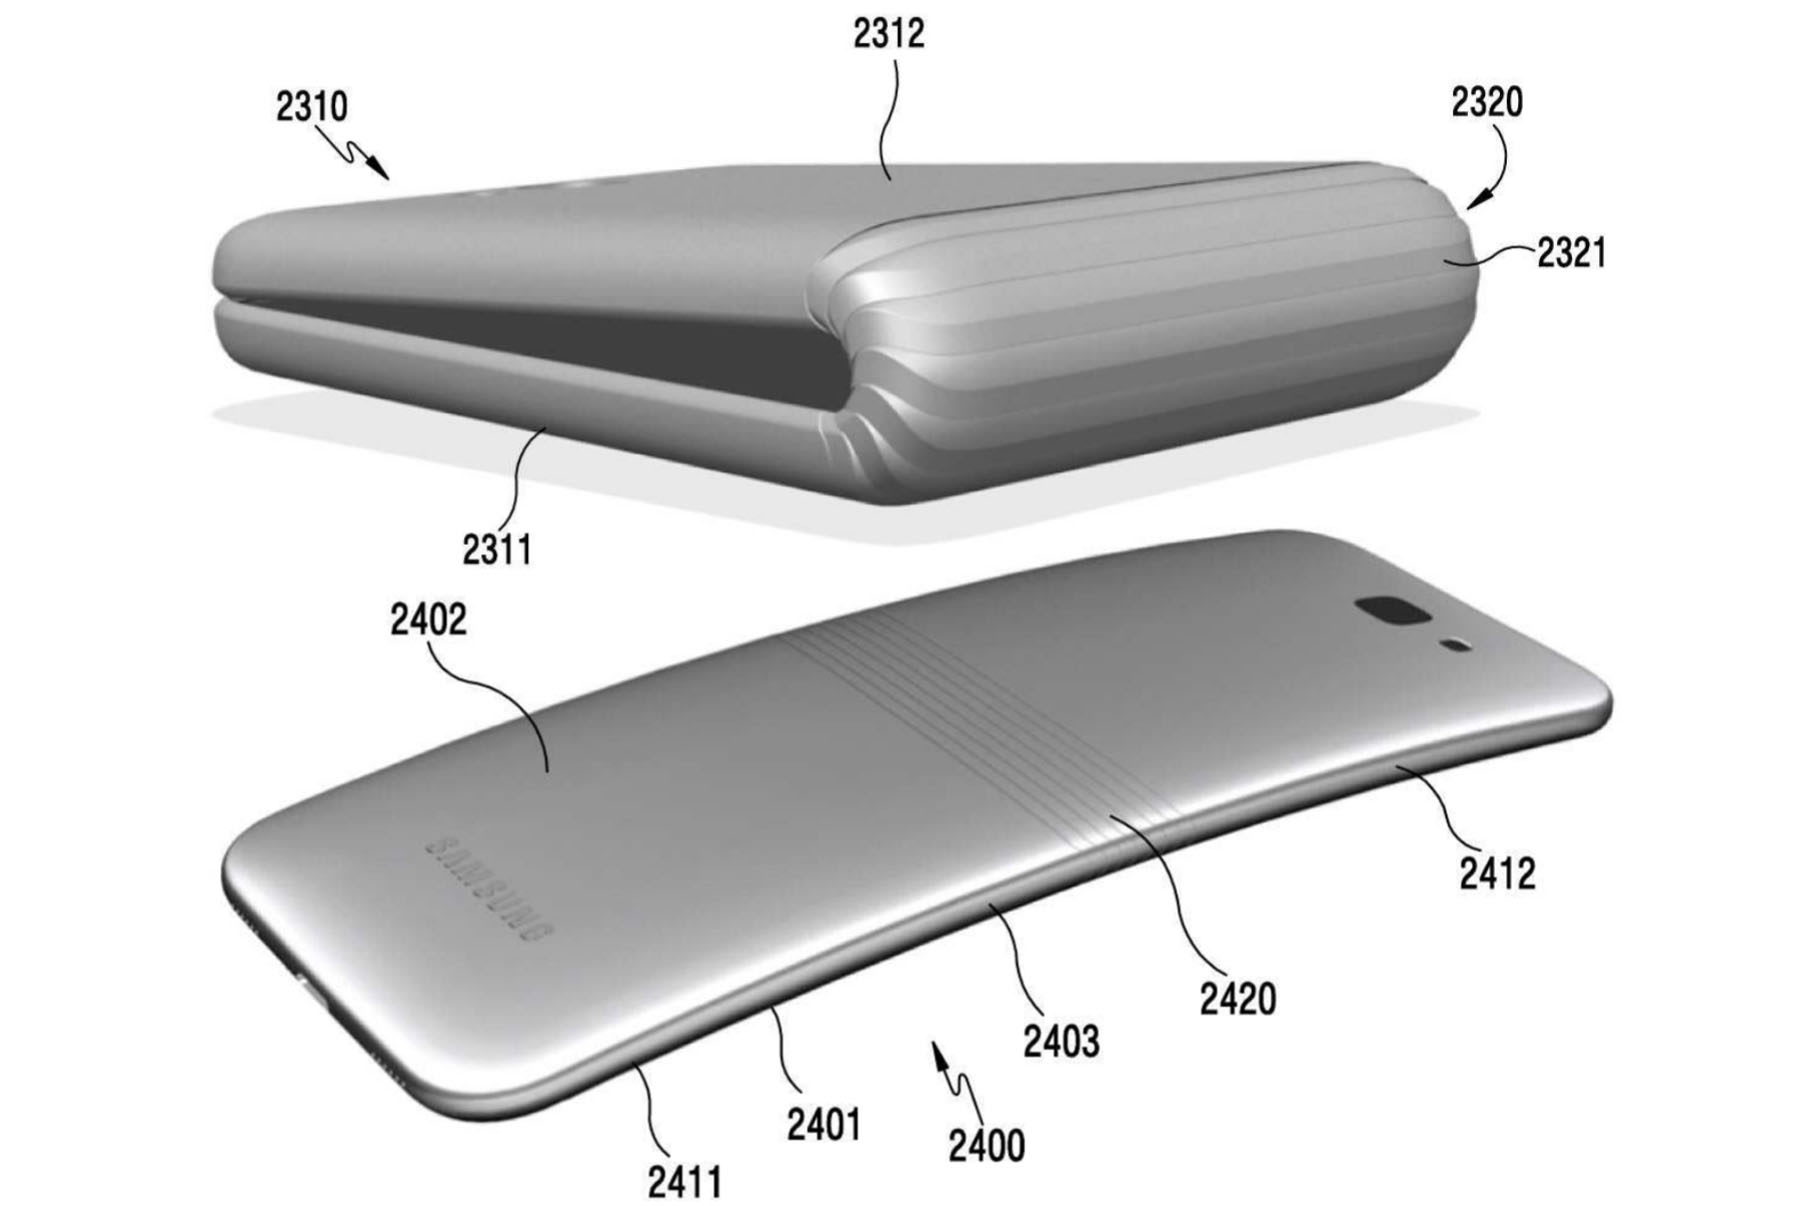 Samsung files patent for a bizarre folding smartphone